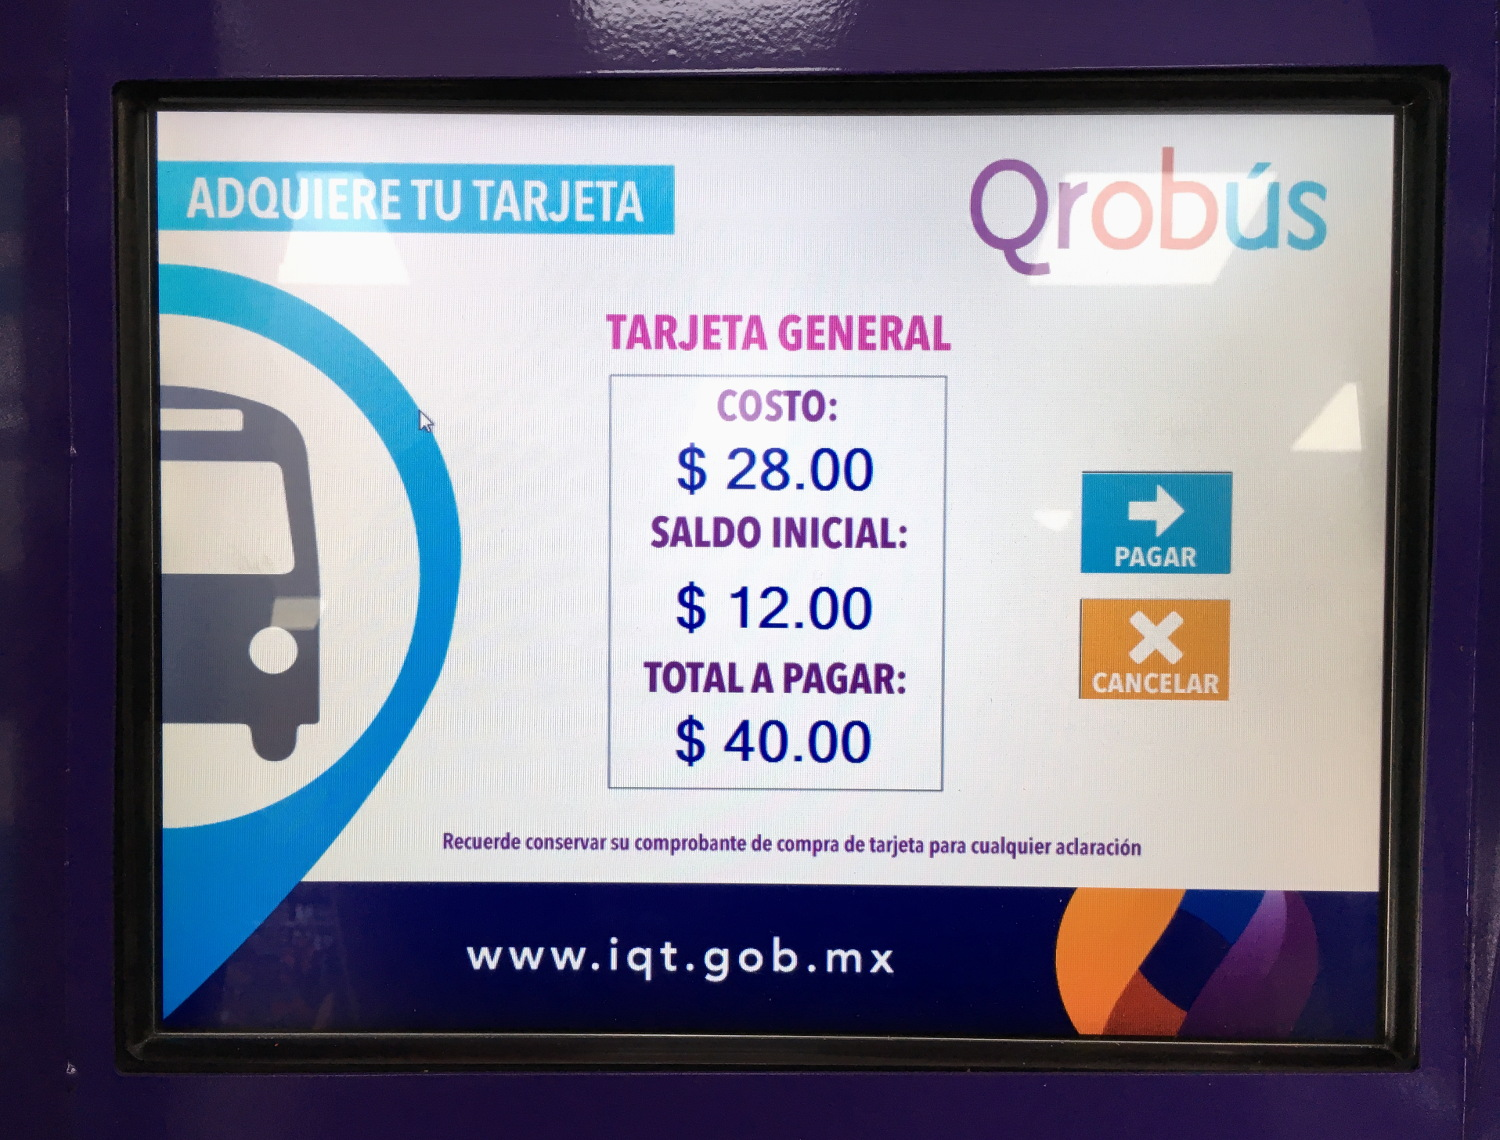 Before we could use public transportation in Santiago de Queretaro, Mexico, we needed needed to purchase a QROBus card. The transaction totaled $40 MXN per card, and came with $12 MXN preloaded on the card.